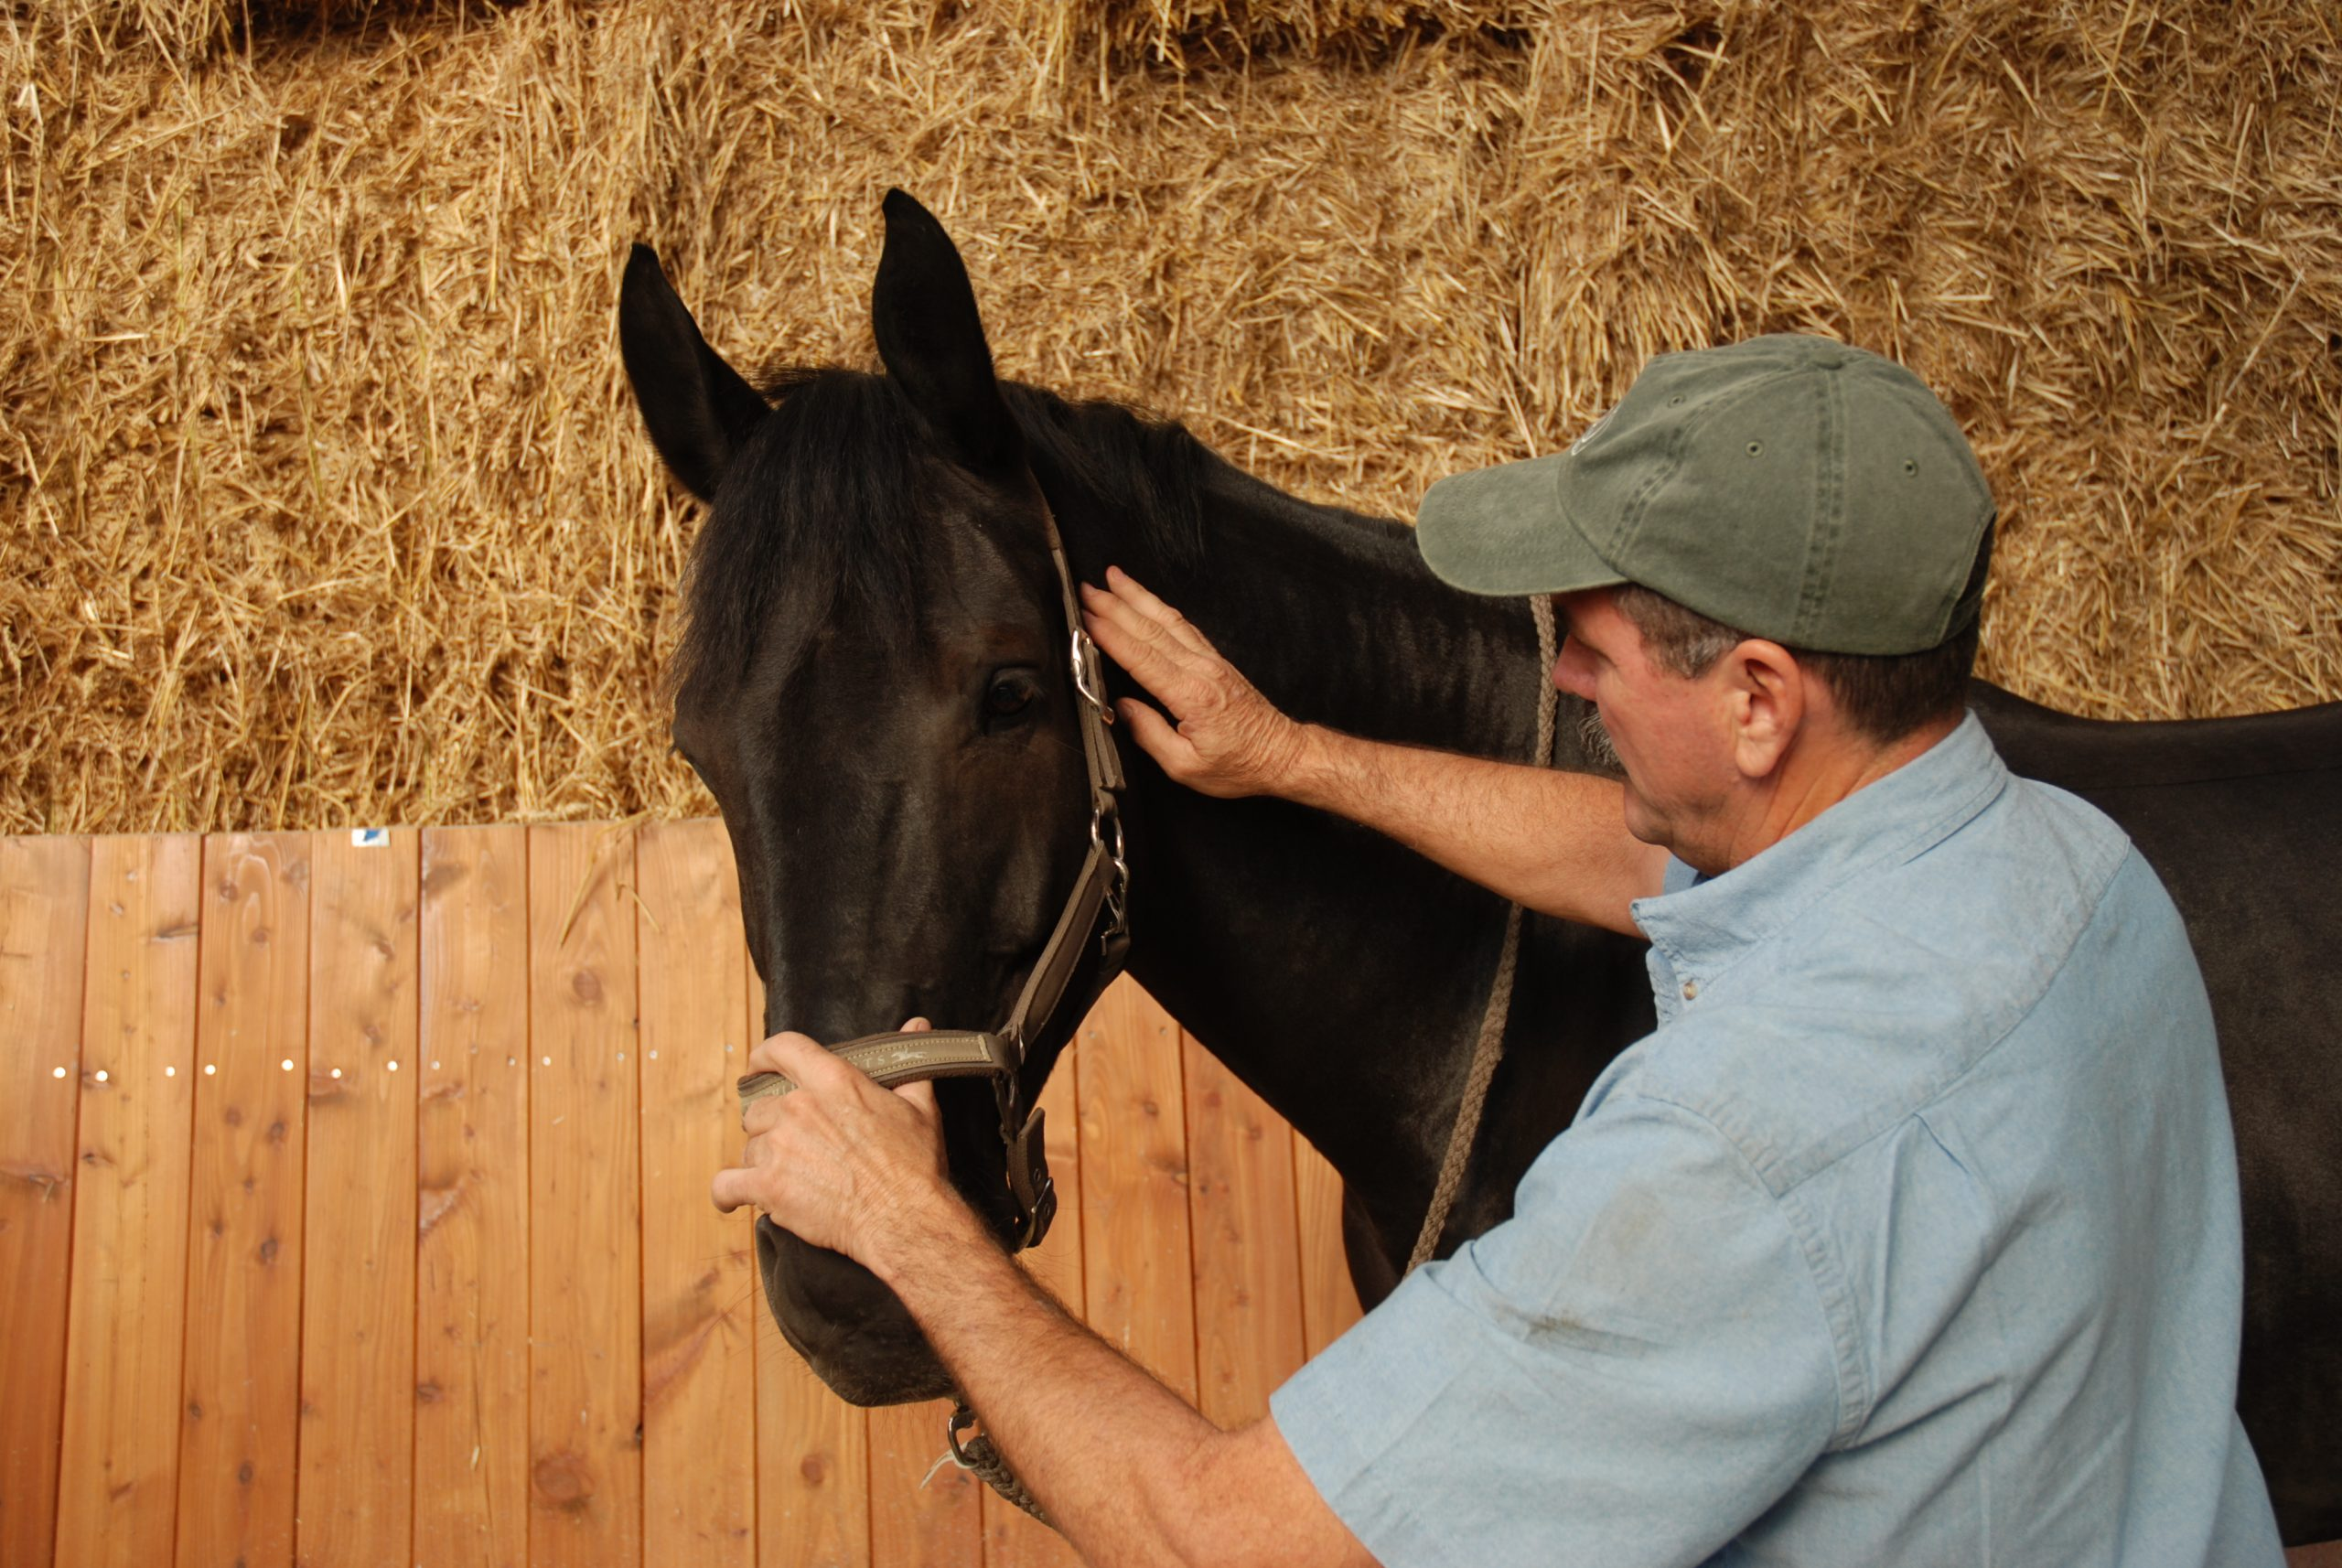 When the horse braces or pulls, soften both hands and shoulders. When he softens, ask again.